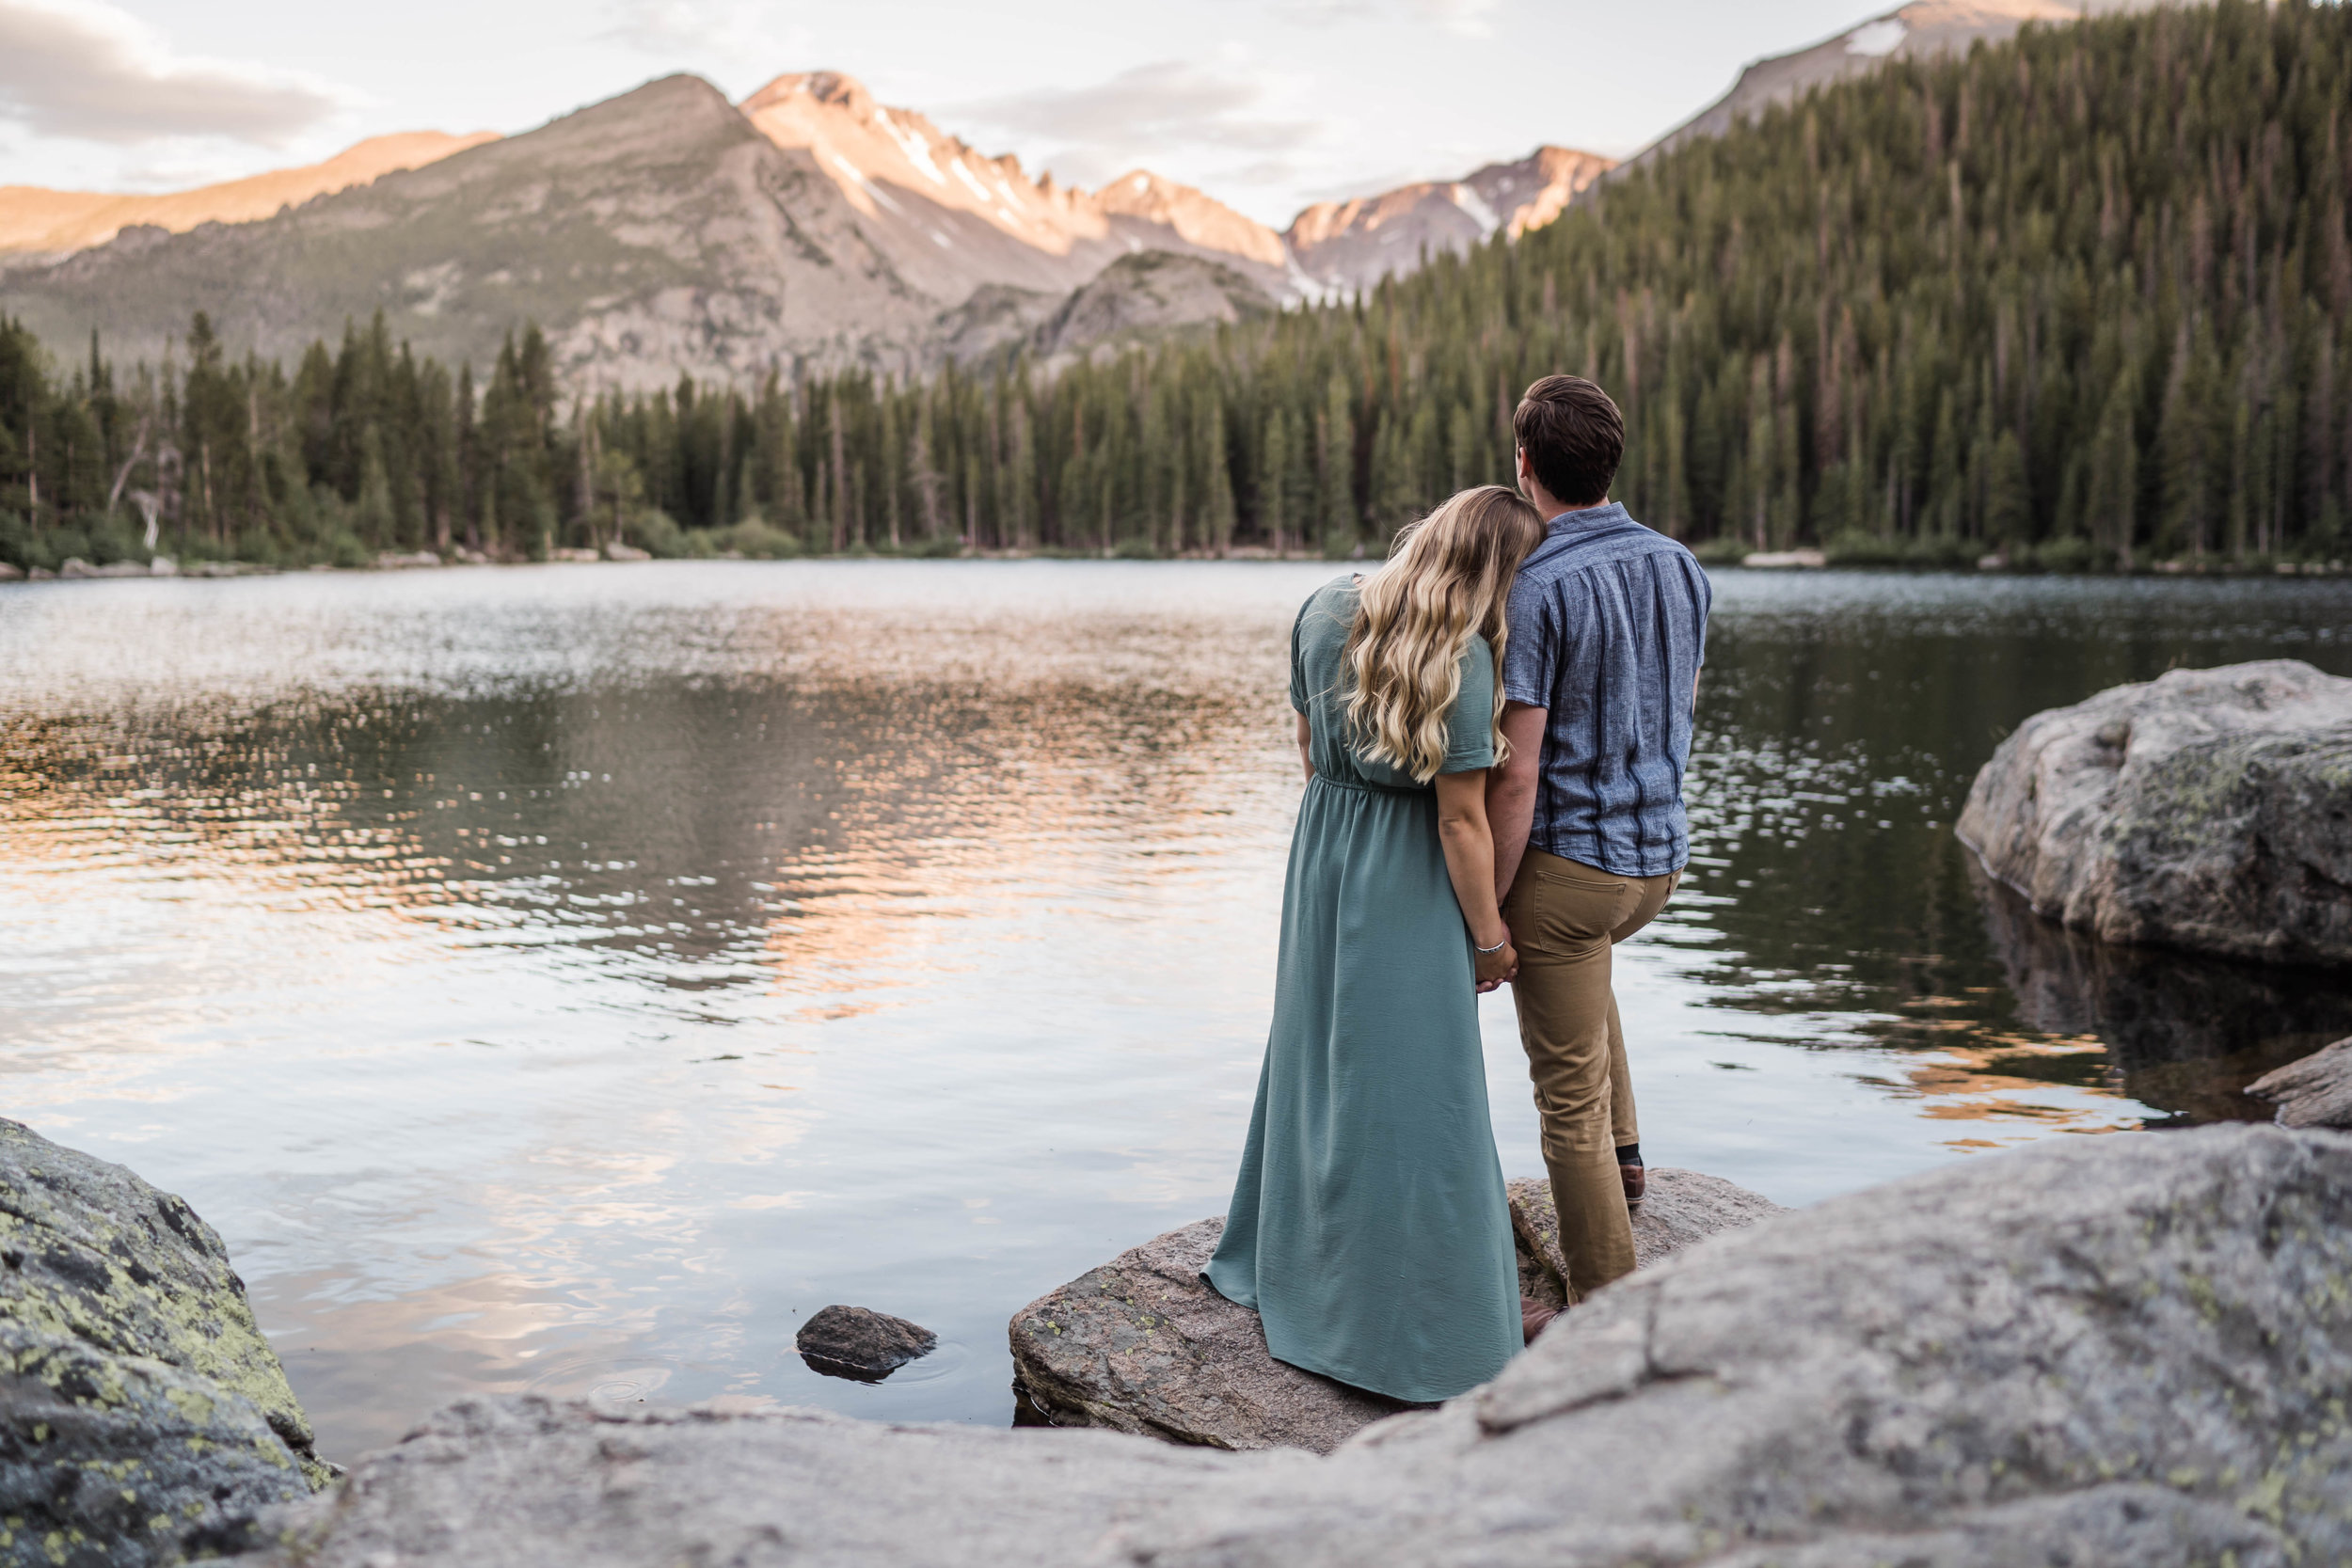 engagement photos in rocky mountain national park RMNP at bear lake -DSD06832.jpg